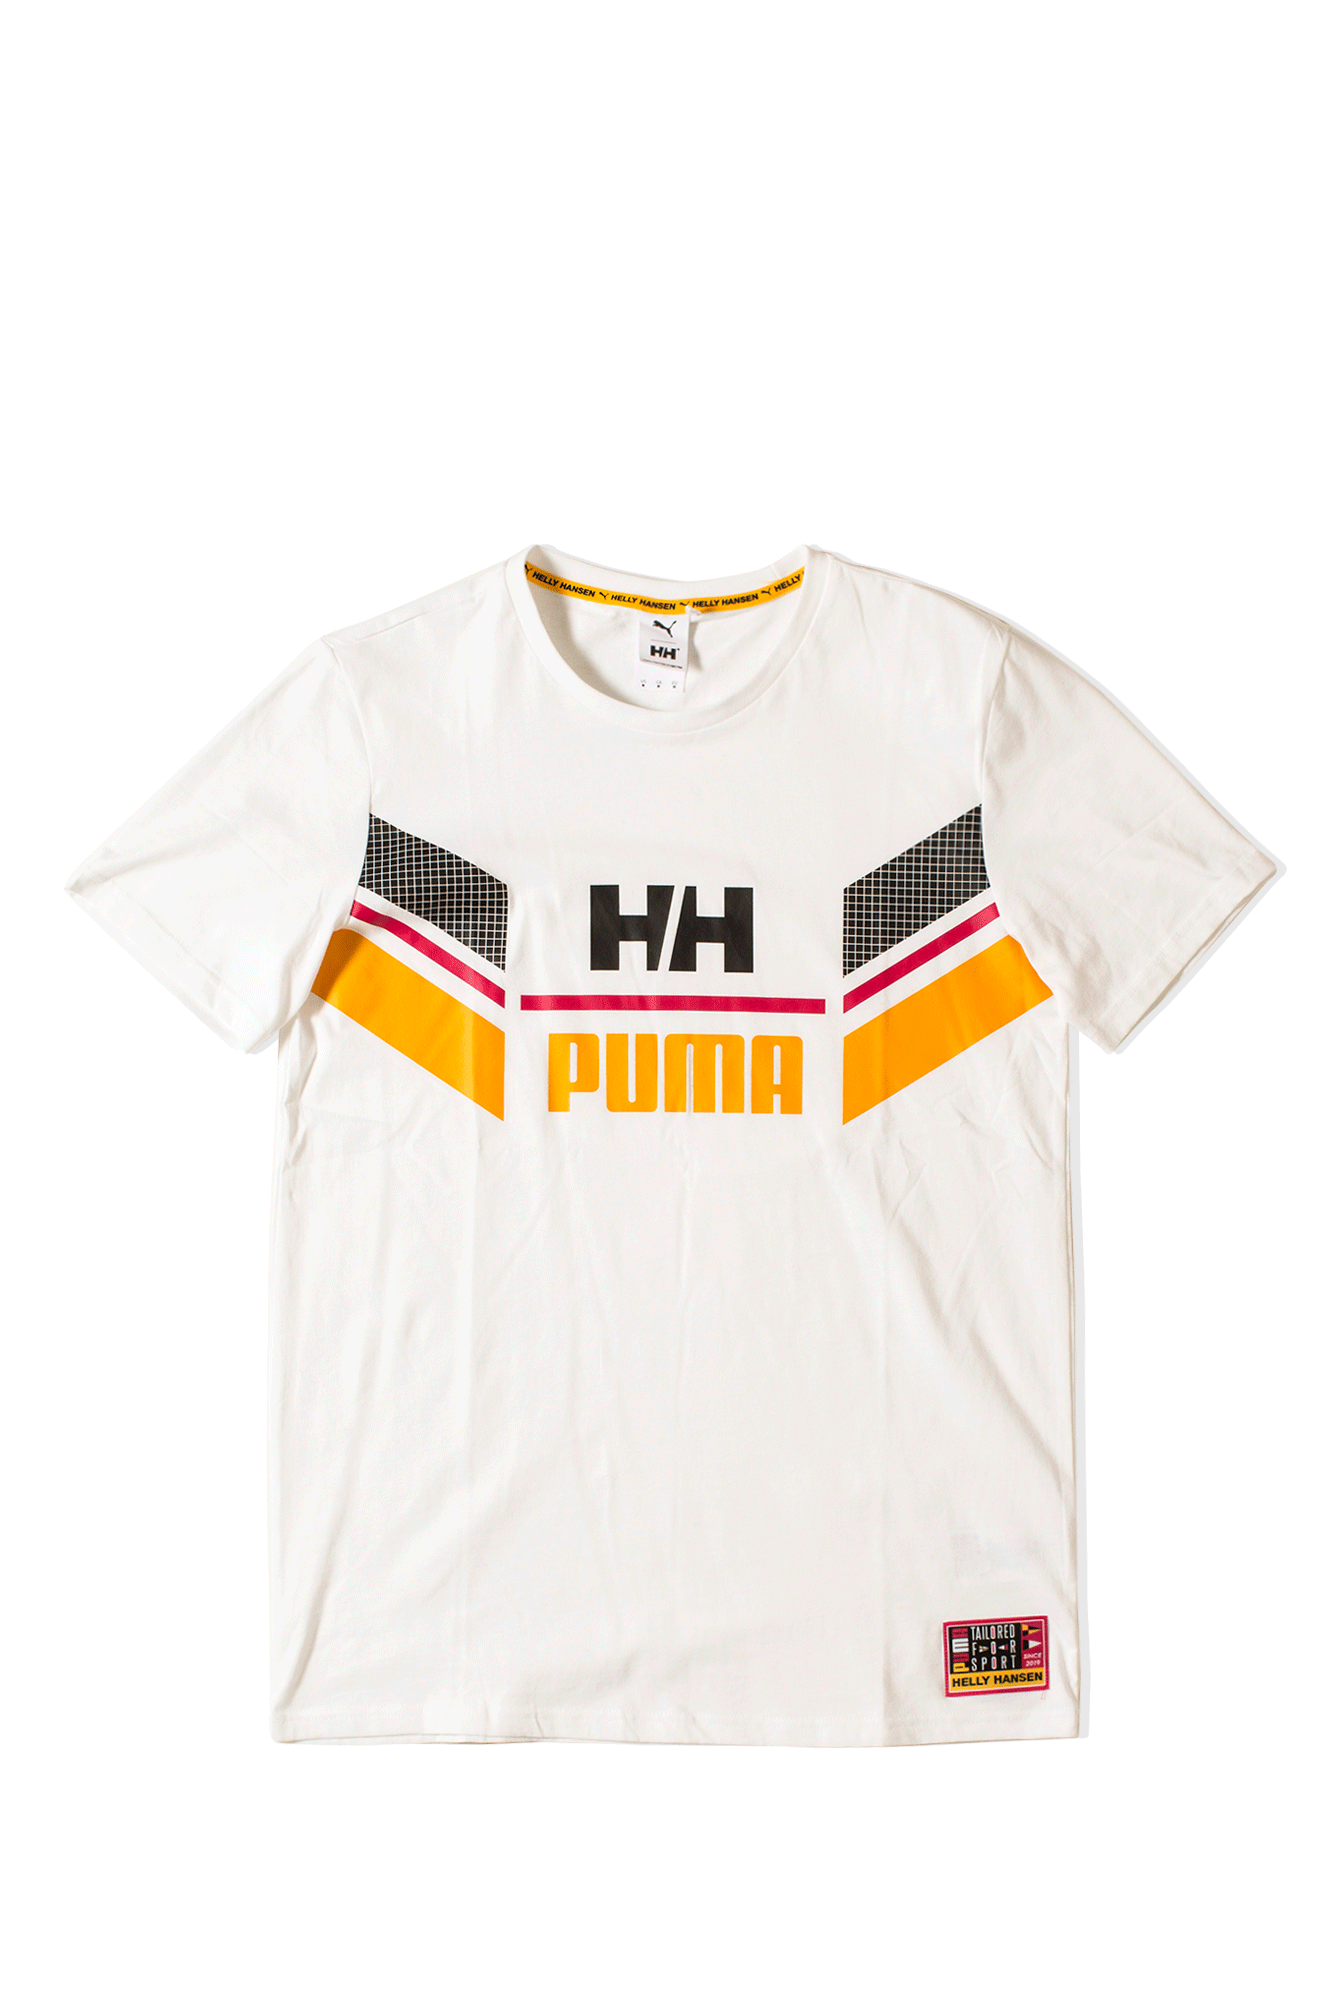 Tee x Helly Hensen White